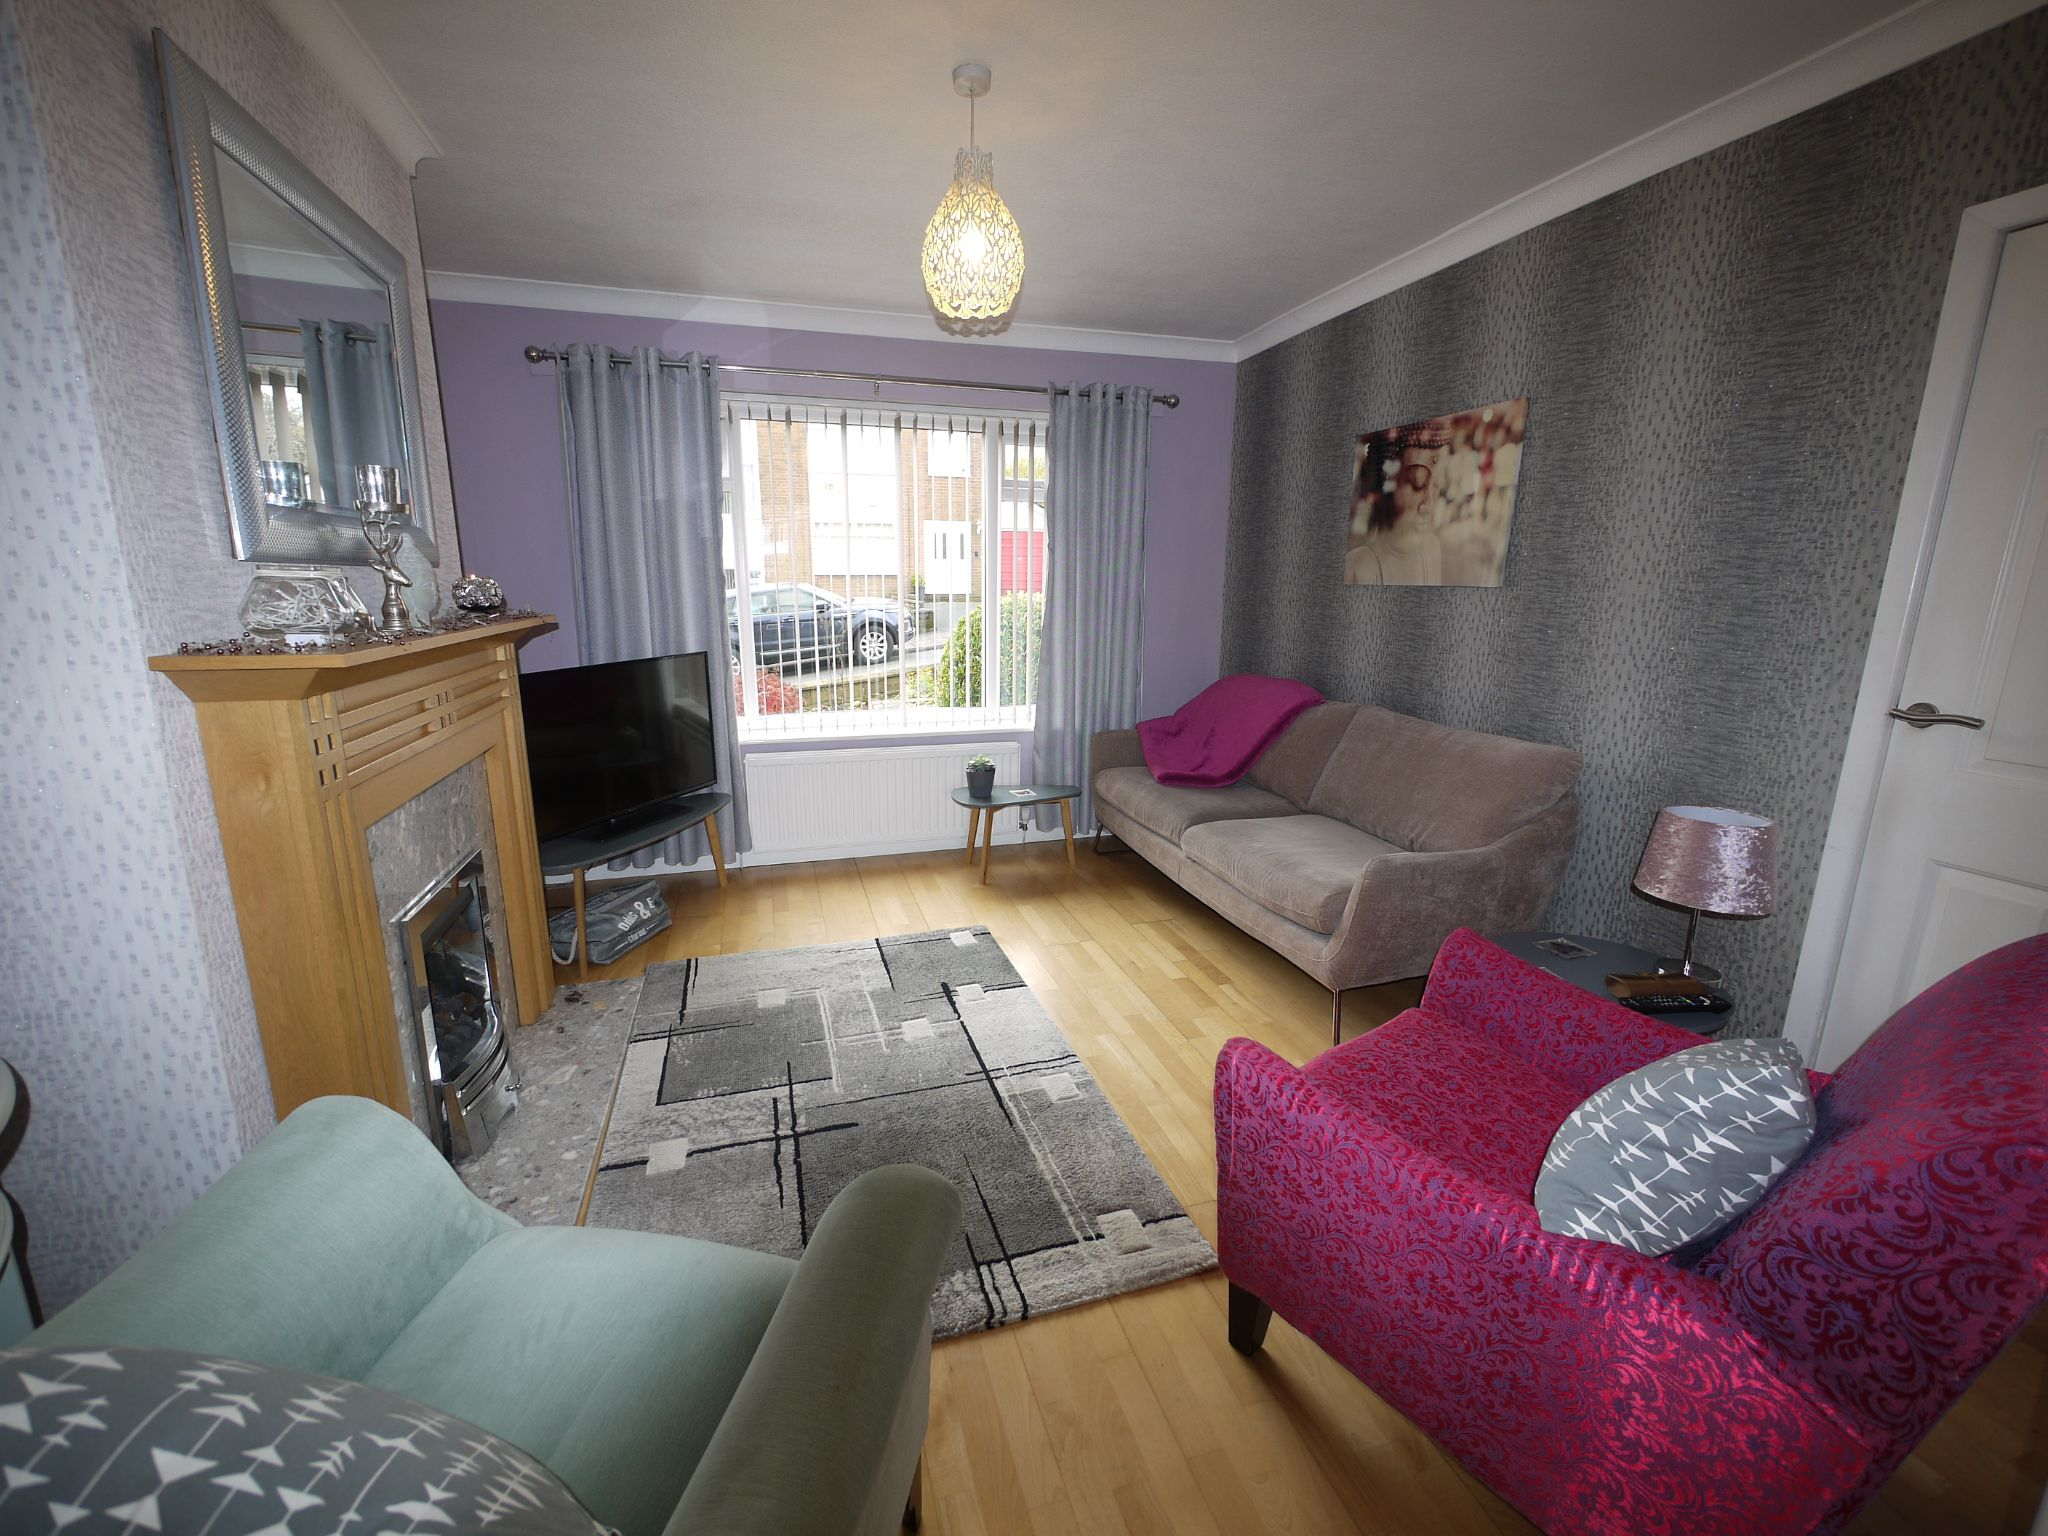 3 bedroom semi-detached house SSTC in Brighouse - Lounge.